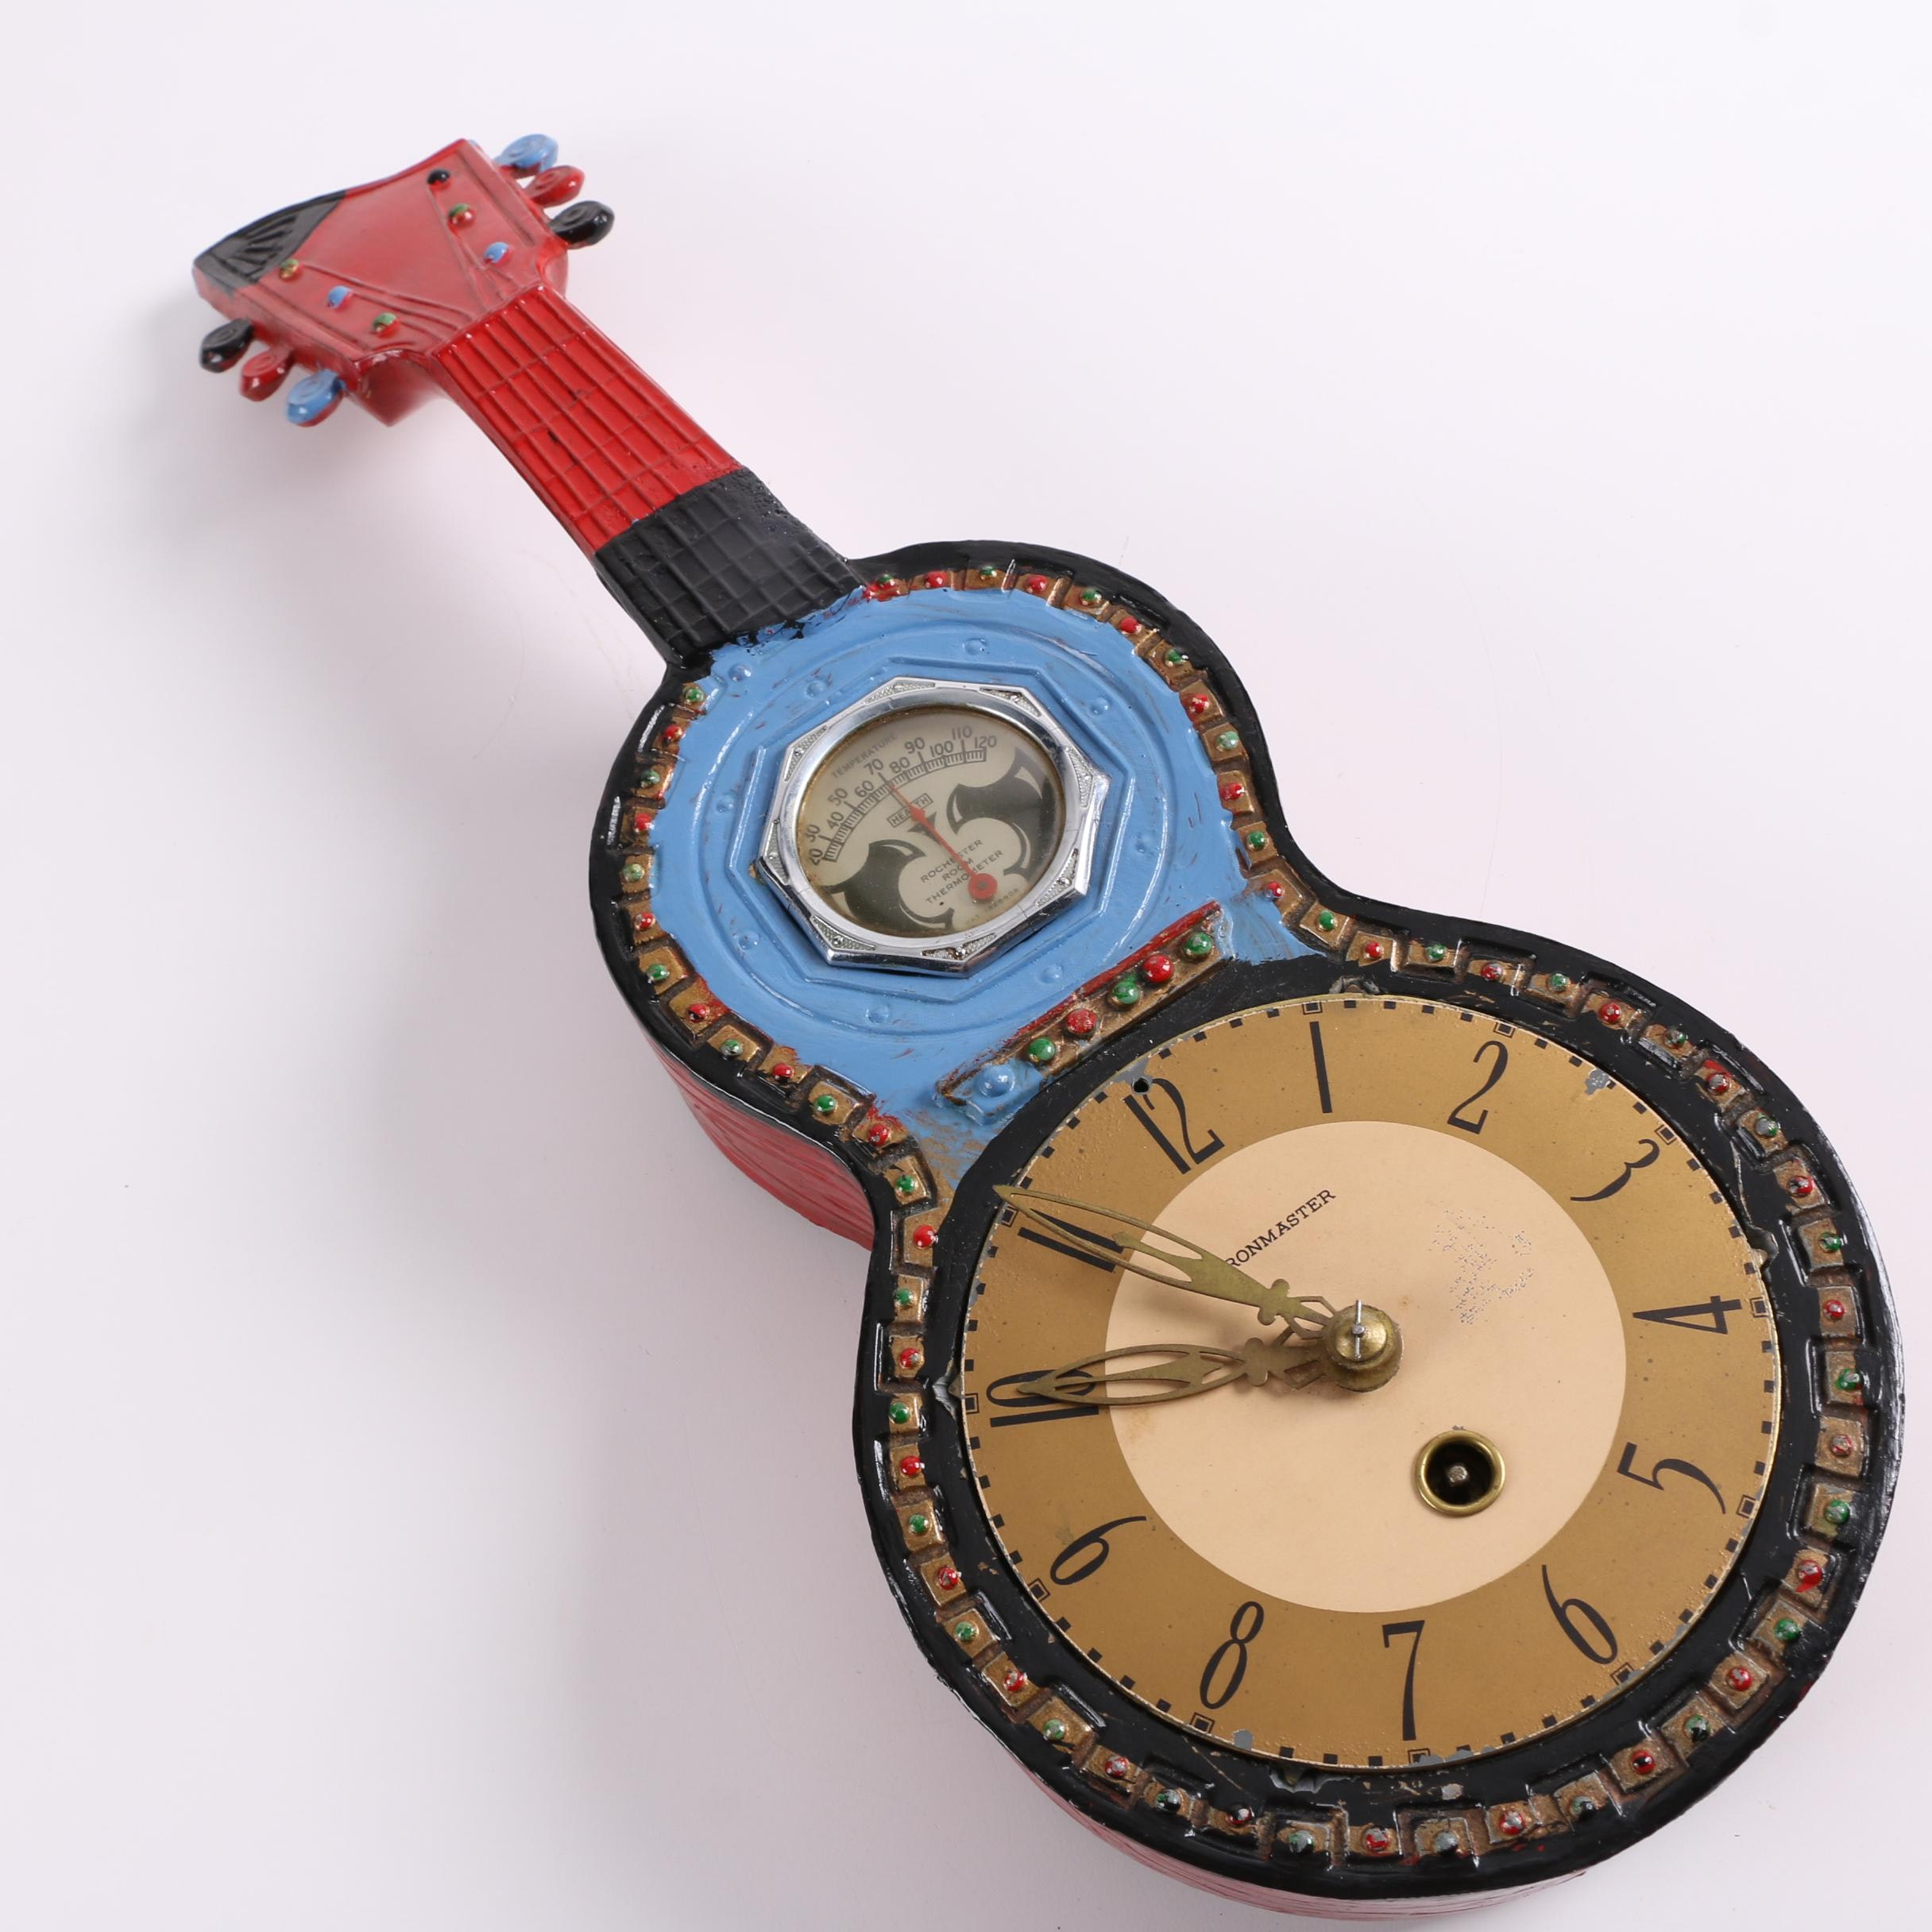 Chronmaster Guitar-Shaped Dual Clock and Thermometer